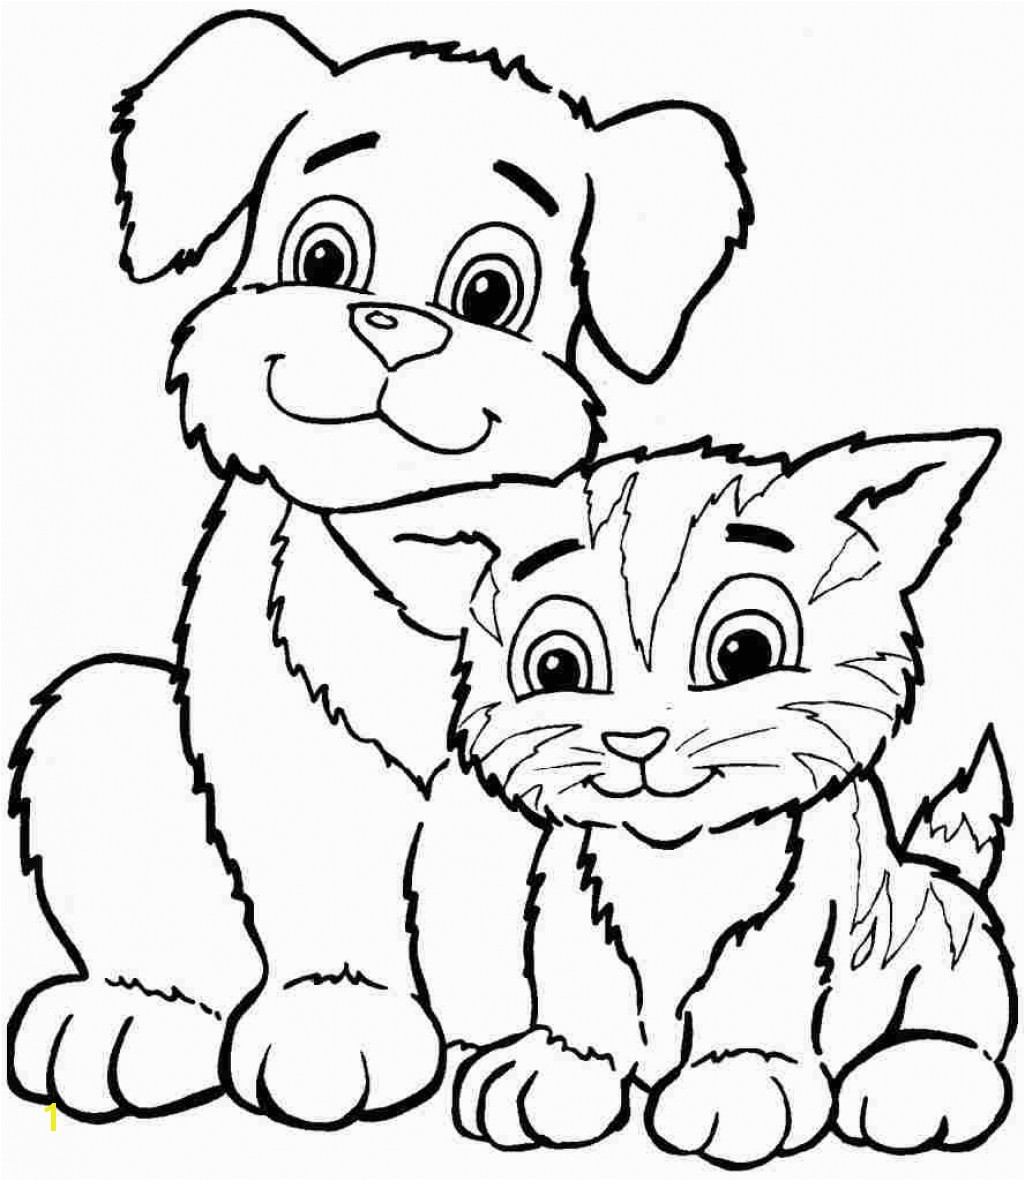 Great Free Printable Animal Coloring Pages 36 For Your Free Coloring Book With Free Printable Animal Coloring Pages At Printable Animal Coloring Pages